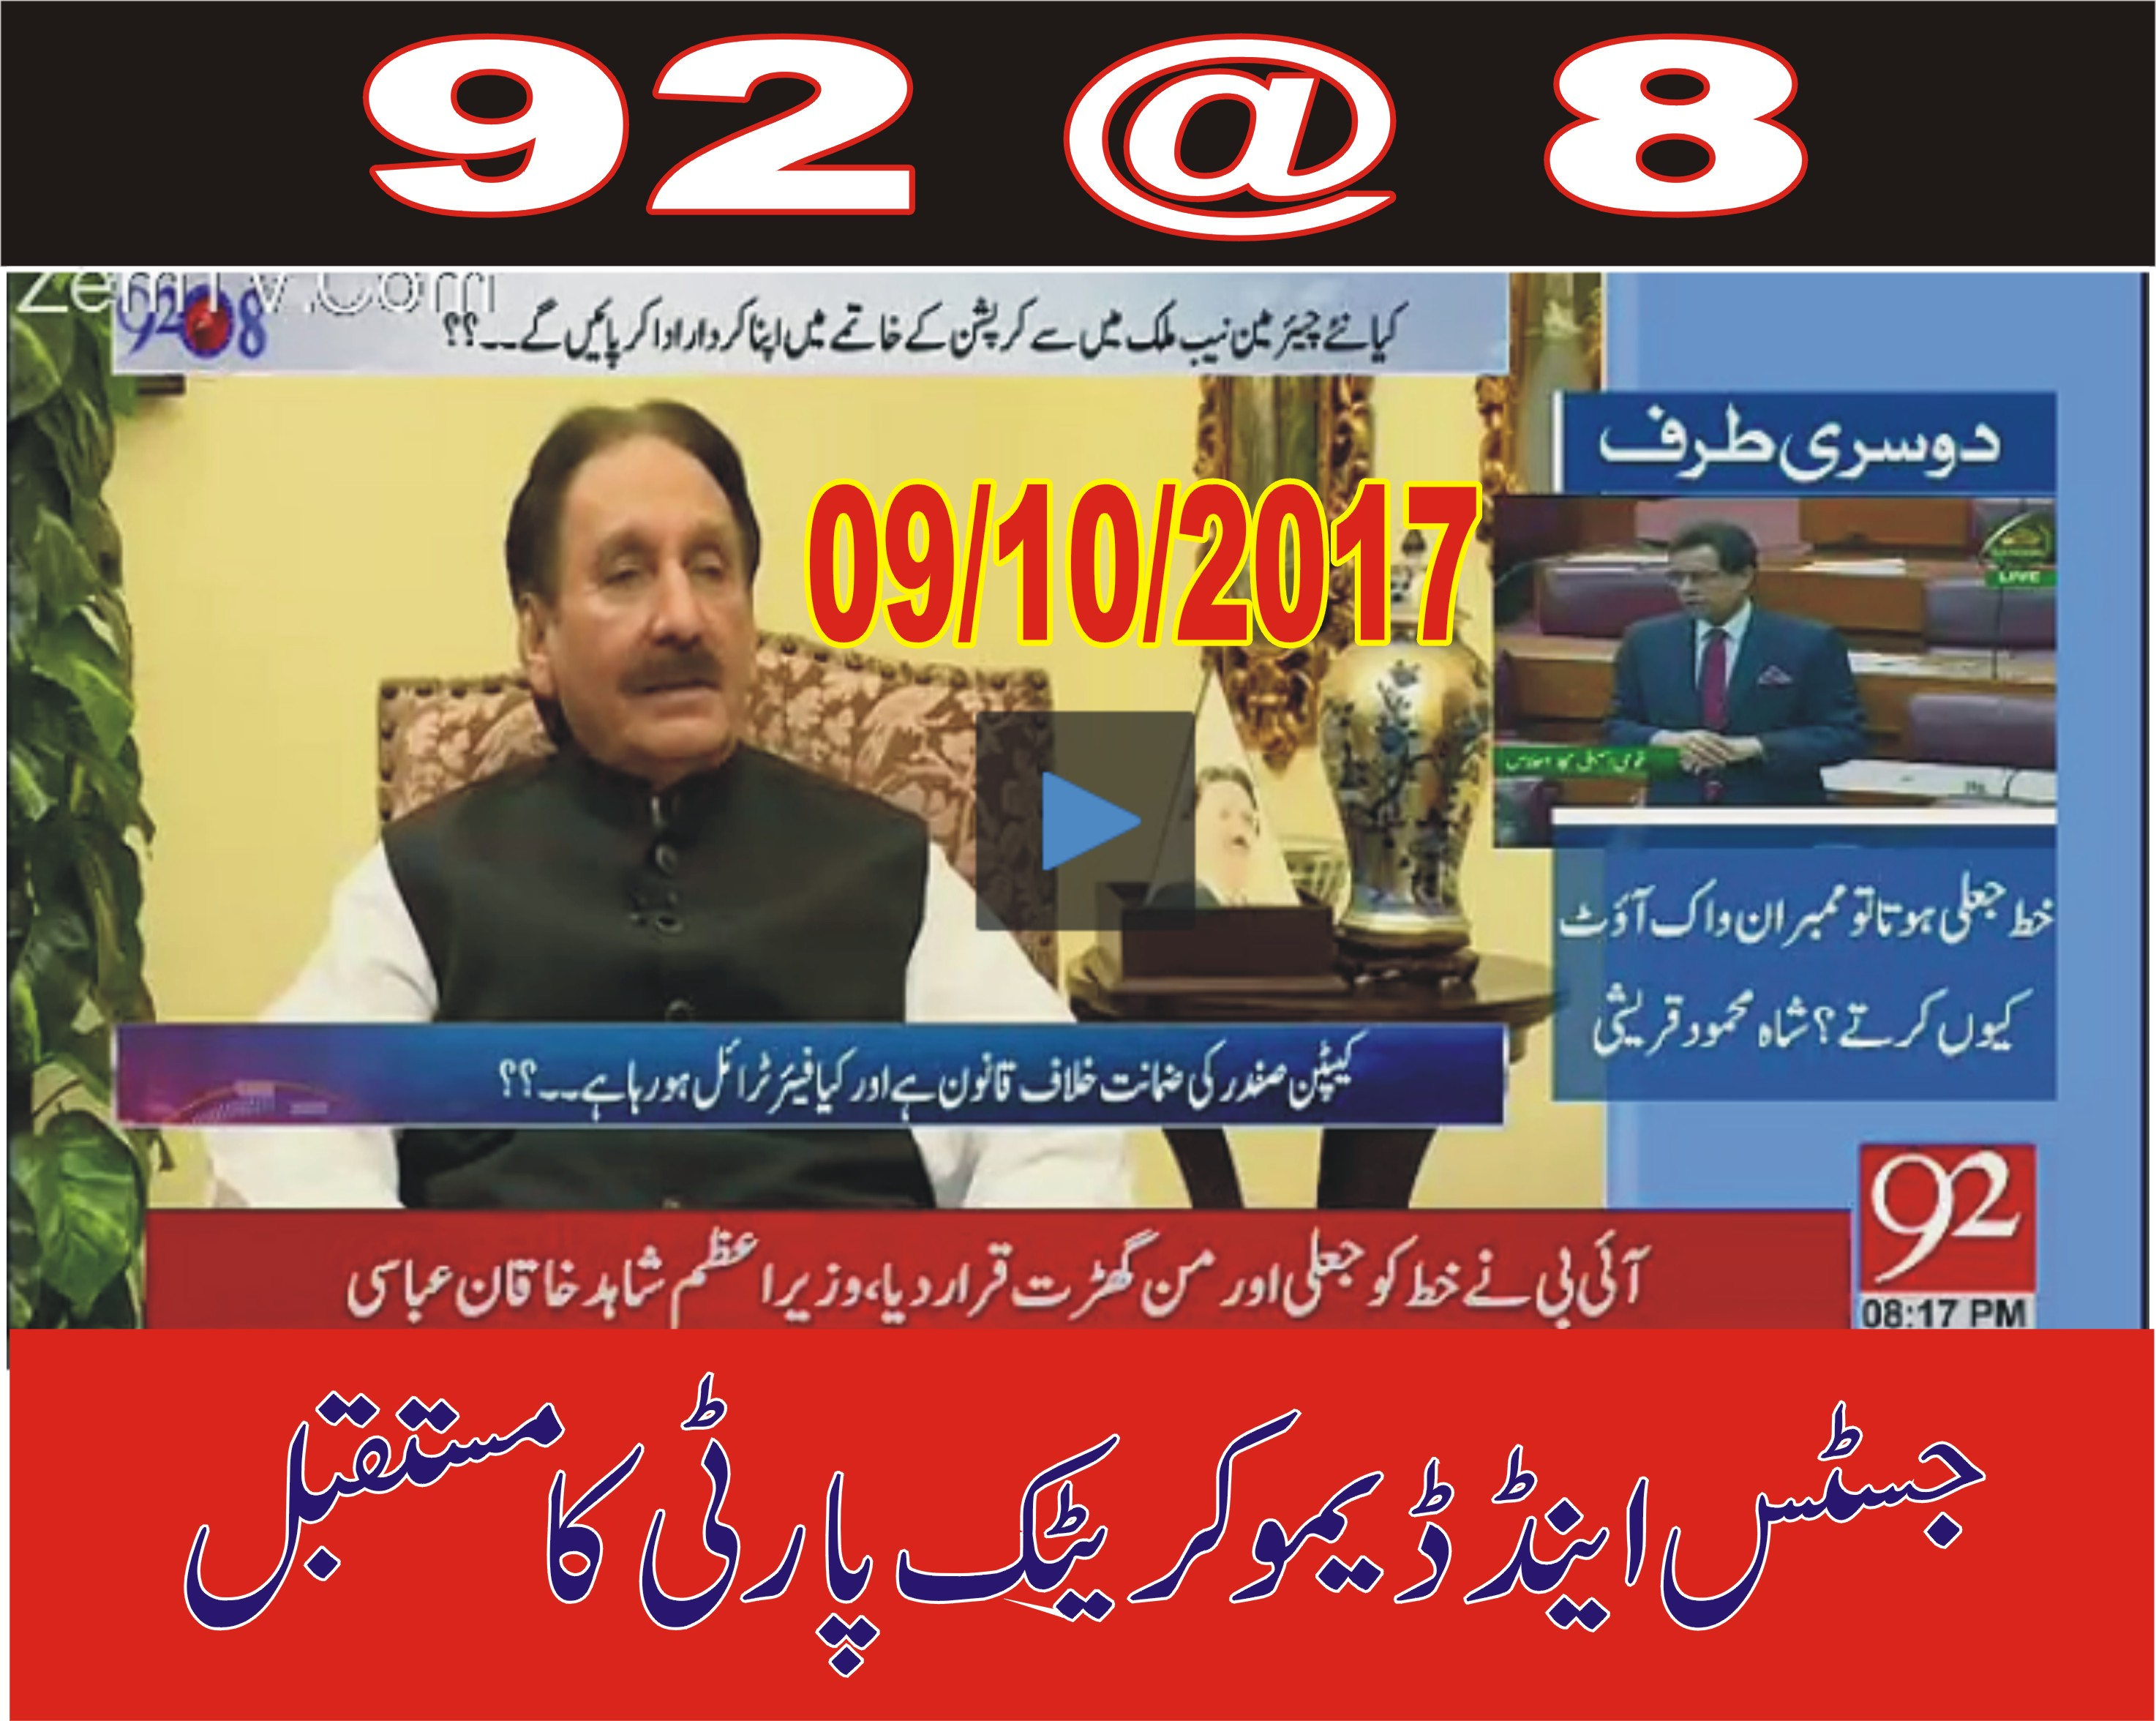 09 Oct 2017 - Justice and Democratic Party Ka Siasi Mustaqbal